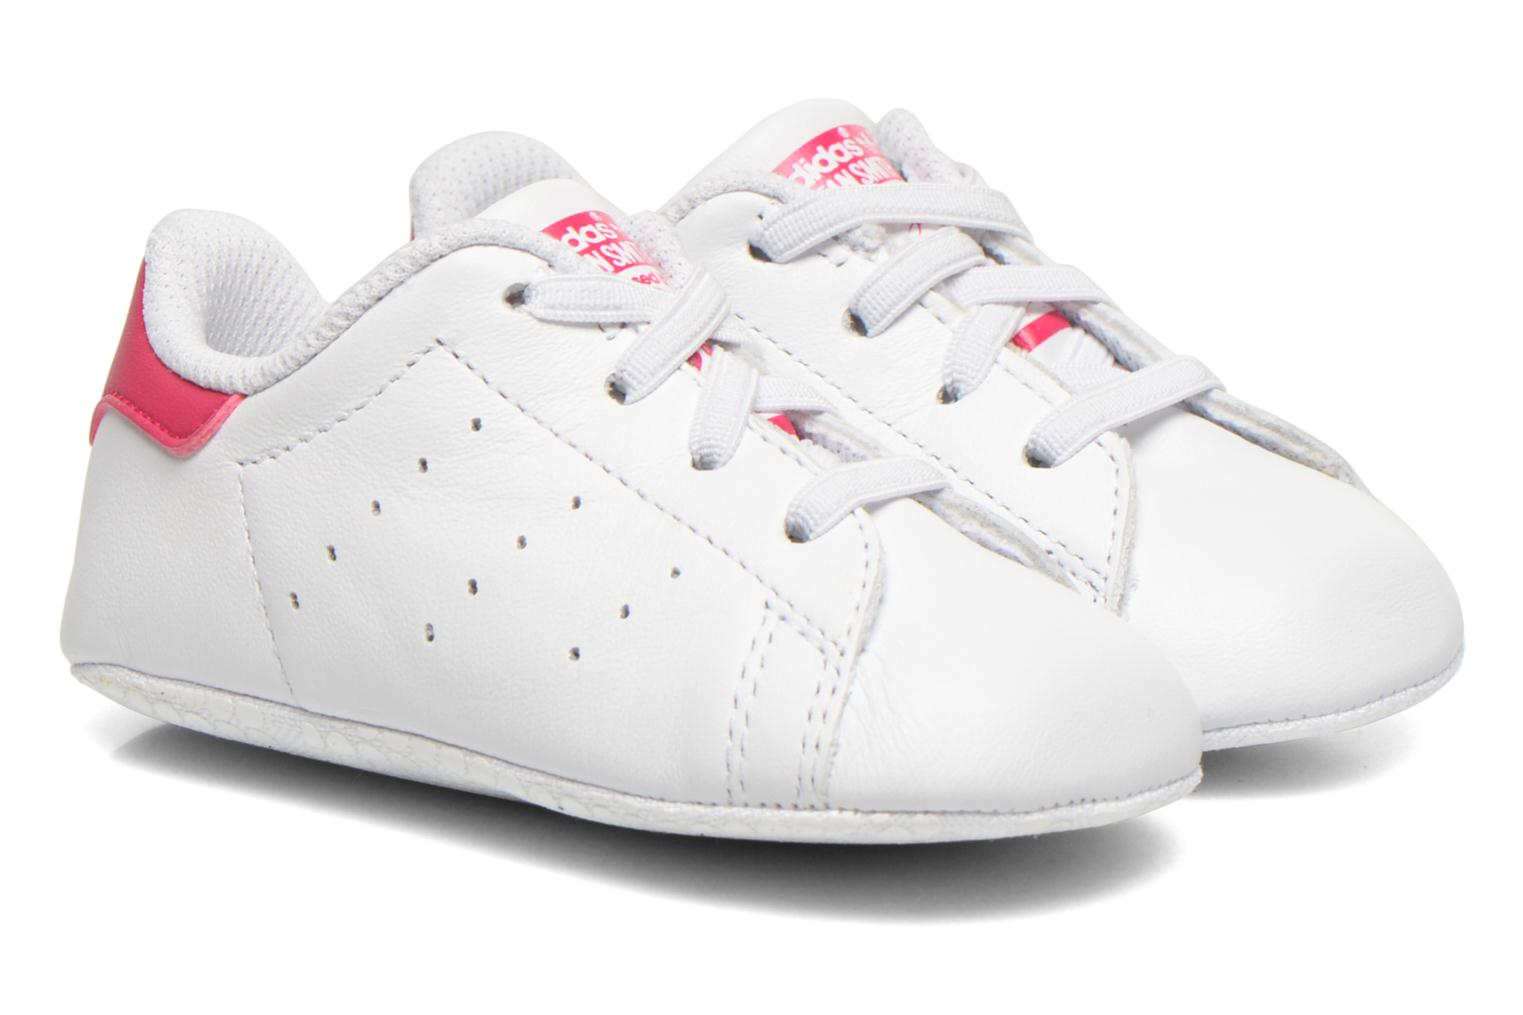 stan smith prezzo athletes world